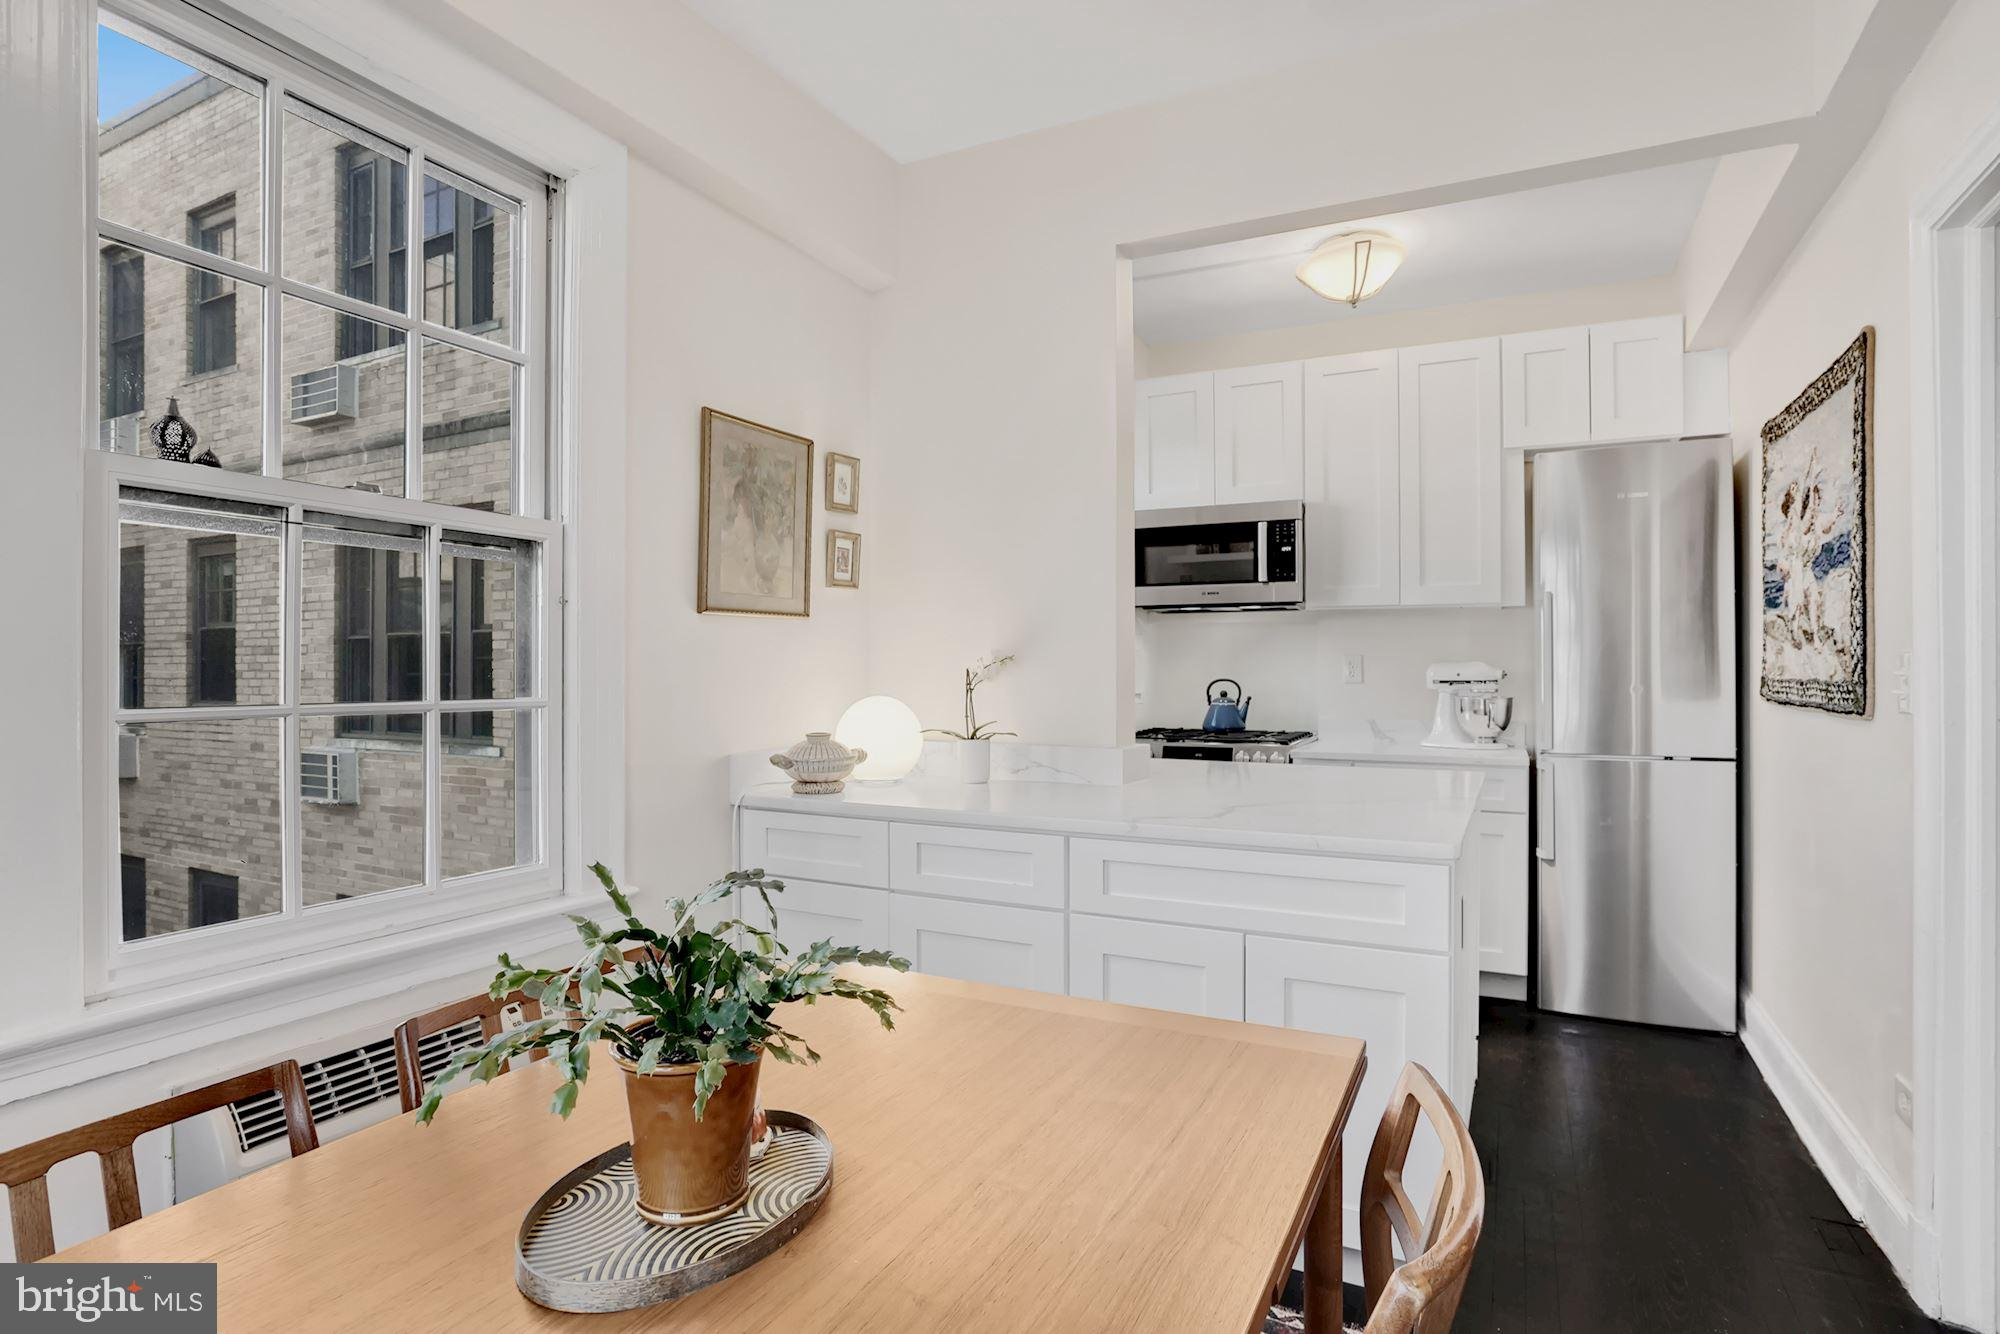 An absolute stunner, newly renovated and move-in ready! Upper floor 1 BD + den and solarium with spe